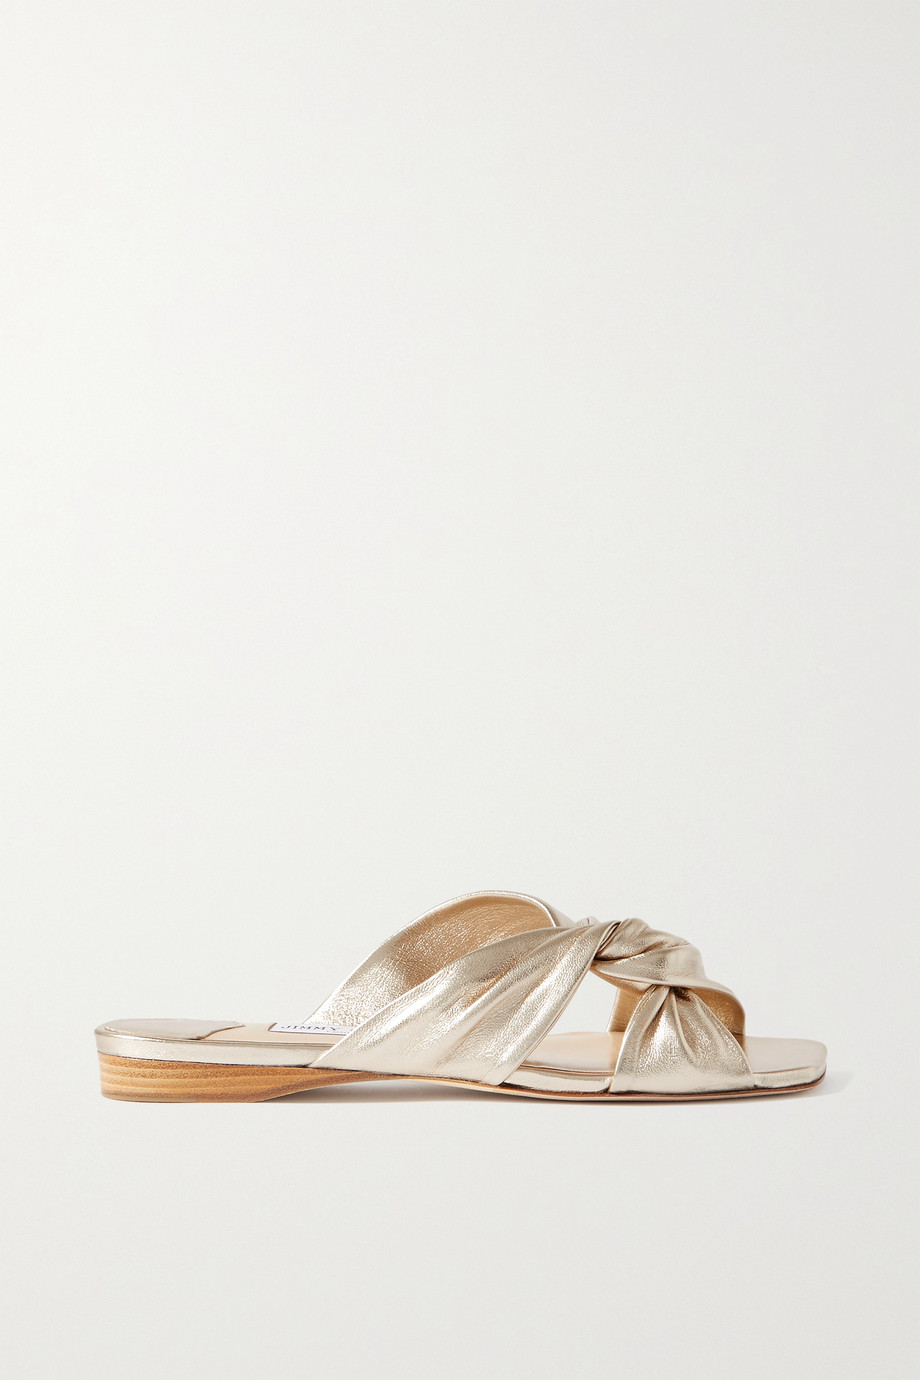 Jimmy Choo Narisa knotted metallic leather sandals